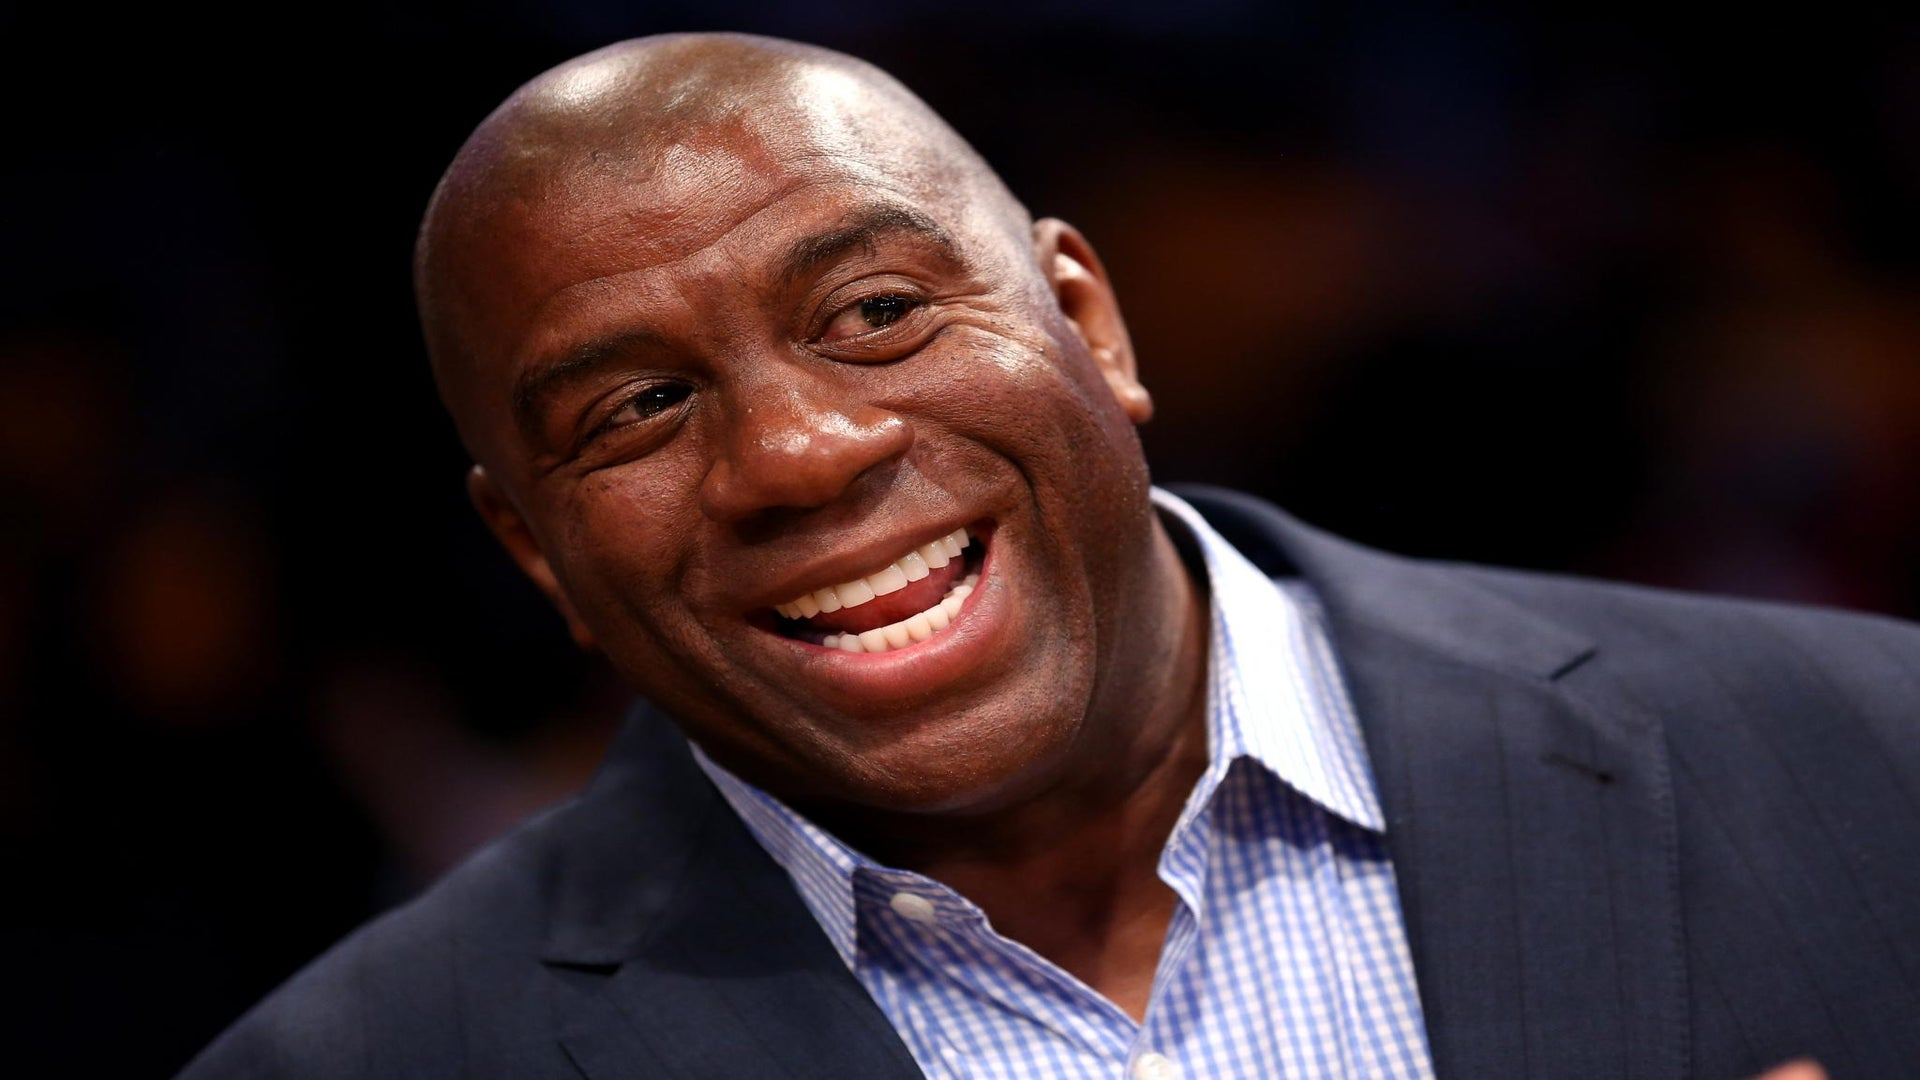 Will Magic Johnson Be the Next Host of 'Celebrity Apprentice'?